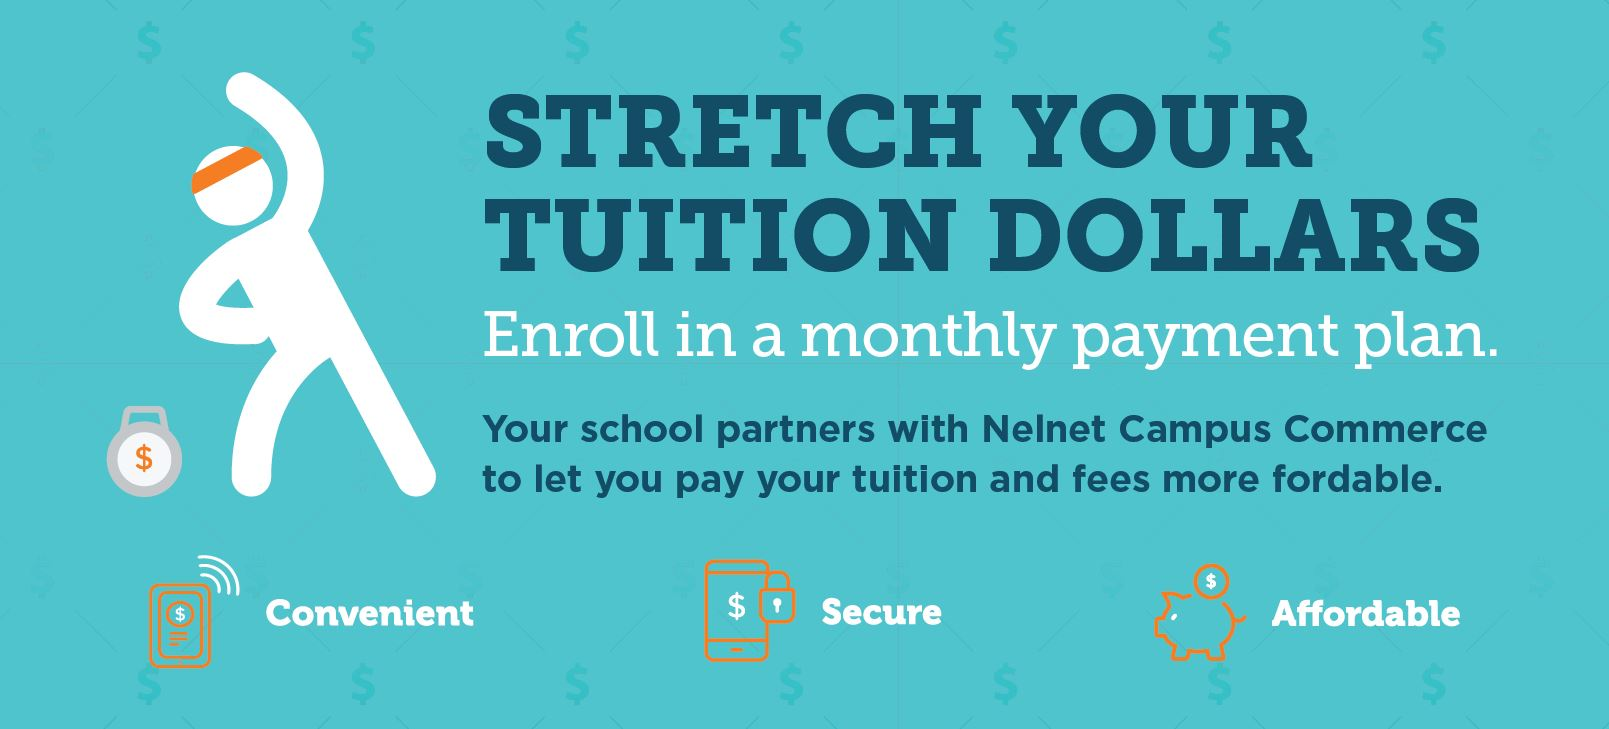 stretch your tuition dollars by enrolling in a monthly payment plan.